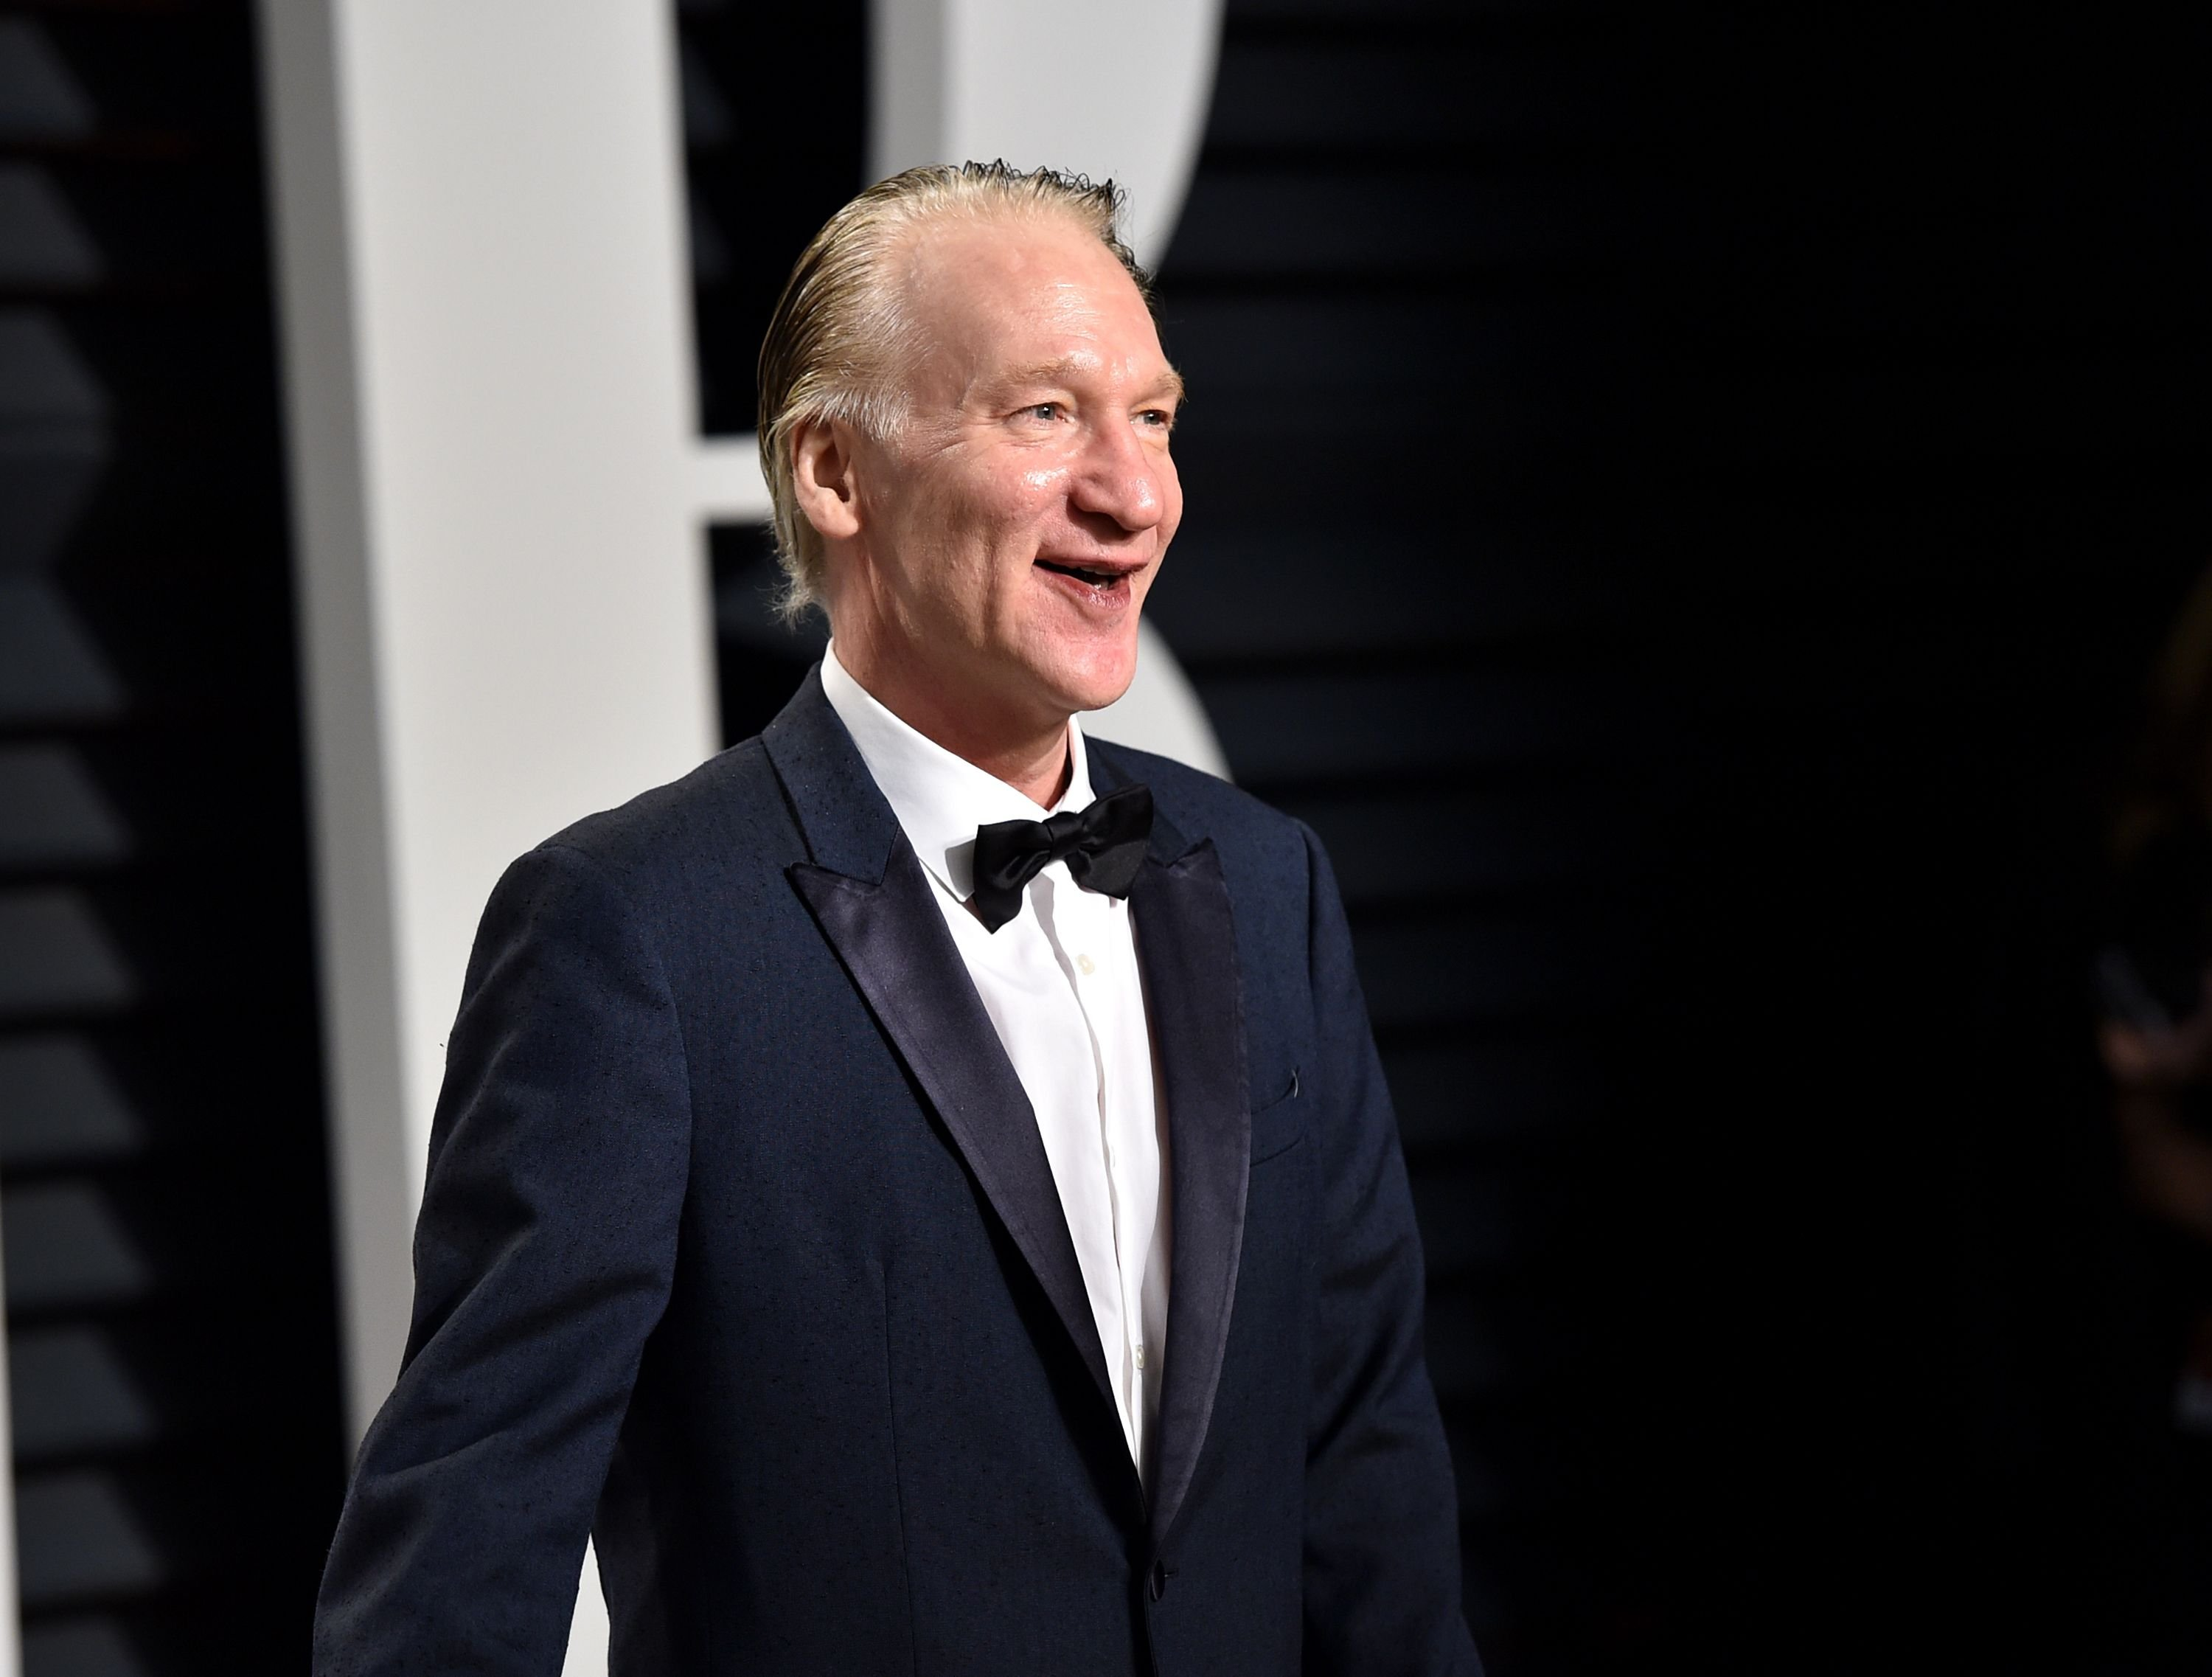 Bill Maher attends the 2017 Vanity Fair Oscar Party at Wallis Annenberg Center for the Performing Arts on February 26, 2017 in Beverly Hills, California. | Photo: Getty Images